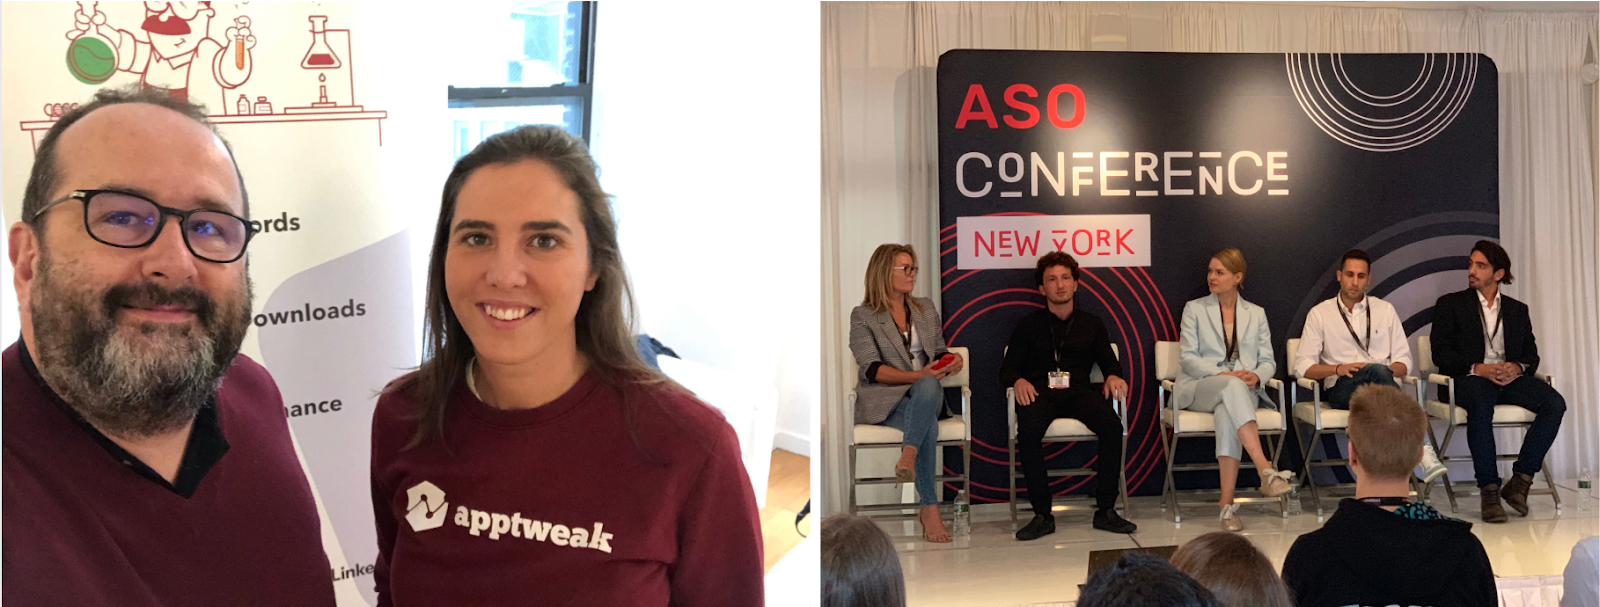 AppTweak at the ASO Conference in New York